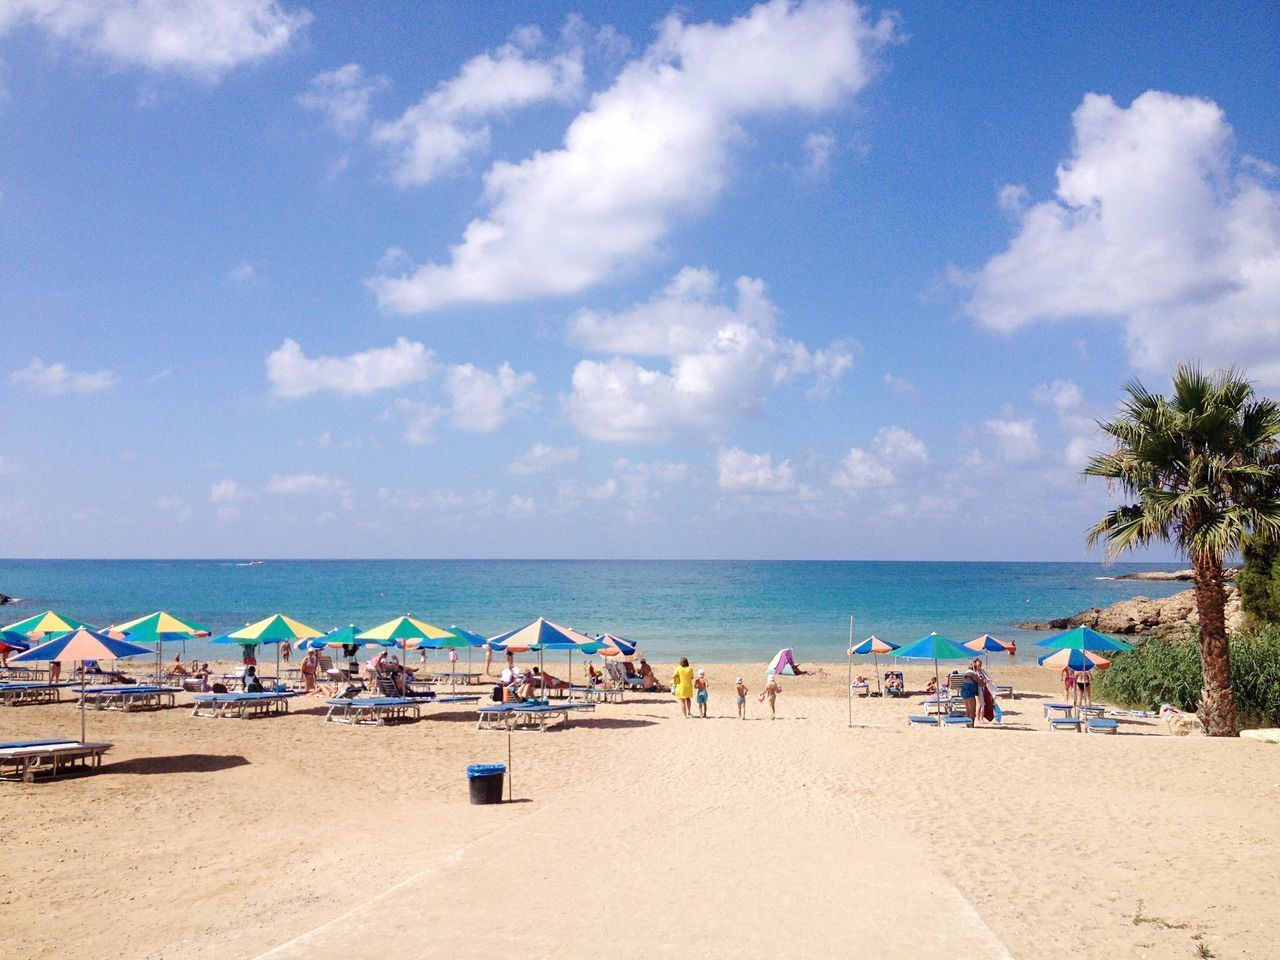 Beach. Beach Sea Sky Sand Water Cloud - Sky Shore Beauty In Nature Holiday Cyprus Summer July Coral Bay Phoyography Paphos Cyprus Paphos